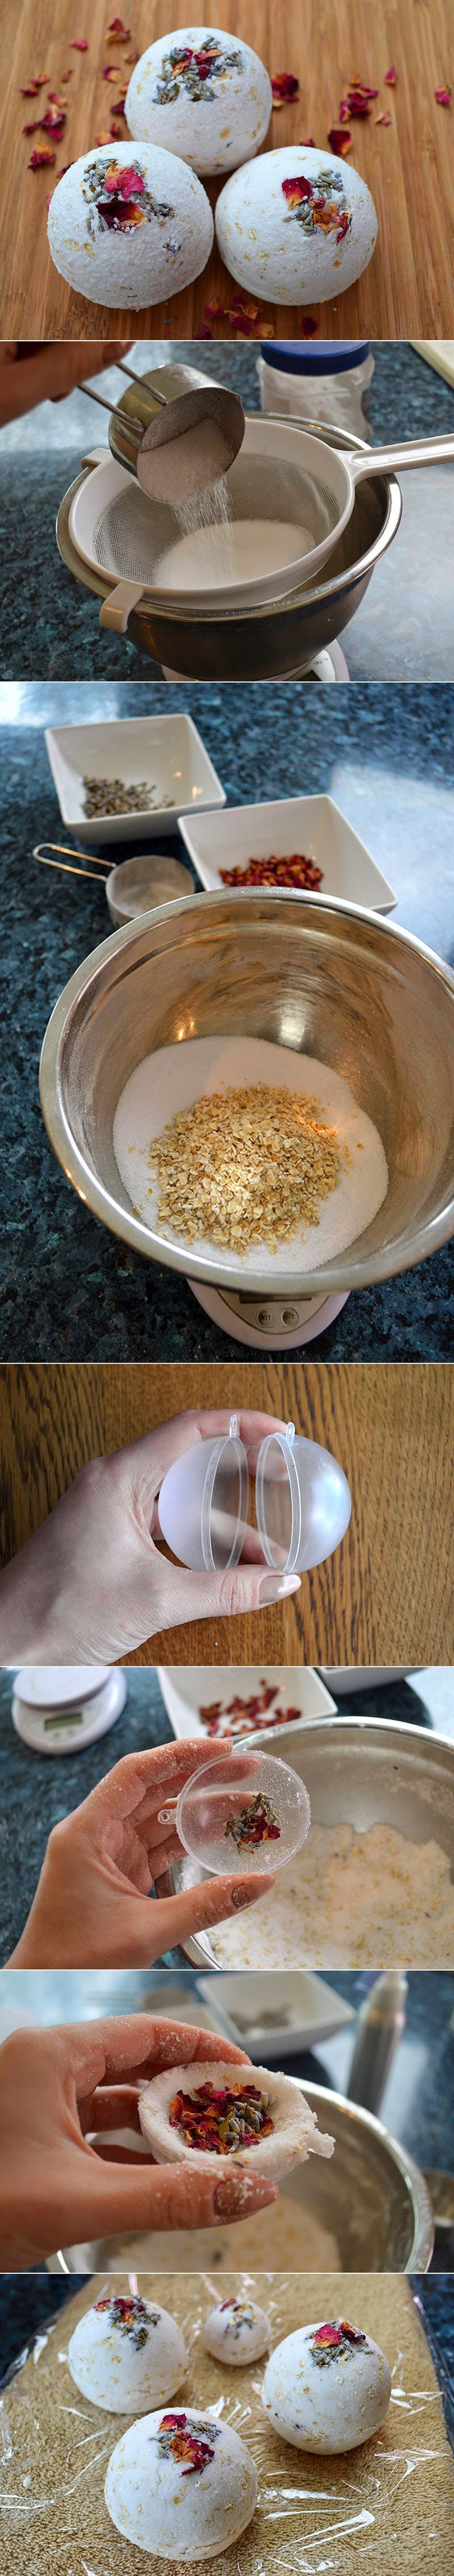 DIY - NATURAL ROSE, LAVENDER N OATMEAL BATH BOMBS ( CLICK THROUGH FOR TUTORIAL ) >> YOU WILL NEED : 1/2 CUP (110G) CITRIC ACID , 1 CUP (290G) BAKING SODA (UK - BICARBONATE OF SODA) , 1/4 CUP (25G) QUICK OATS , 1/4 TSP LAVENDER ESSENTIAL OIL , 1/8 TSP ROSE GERANIUM ESSENTIAL OIL , FLOWER PETALS (LAVENDER BUDS AND ROSE PETALS) , WITCH HAZEL (IN A SPRAY BOTTLE) , BATH BOMB MOULD